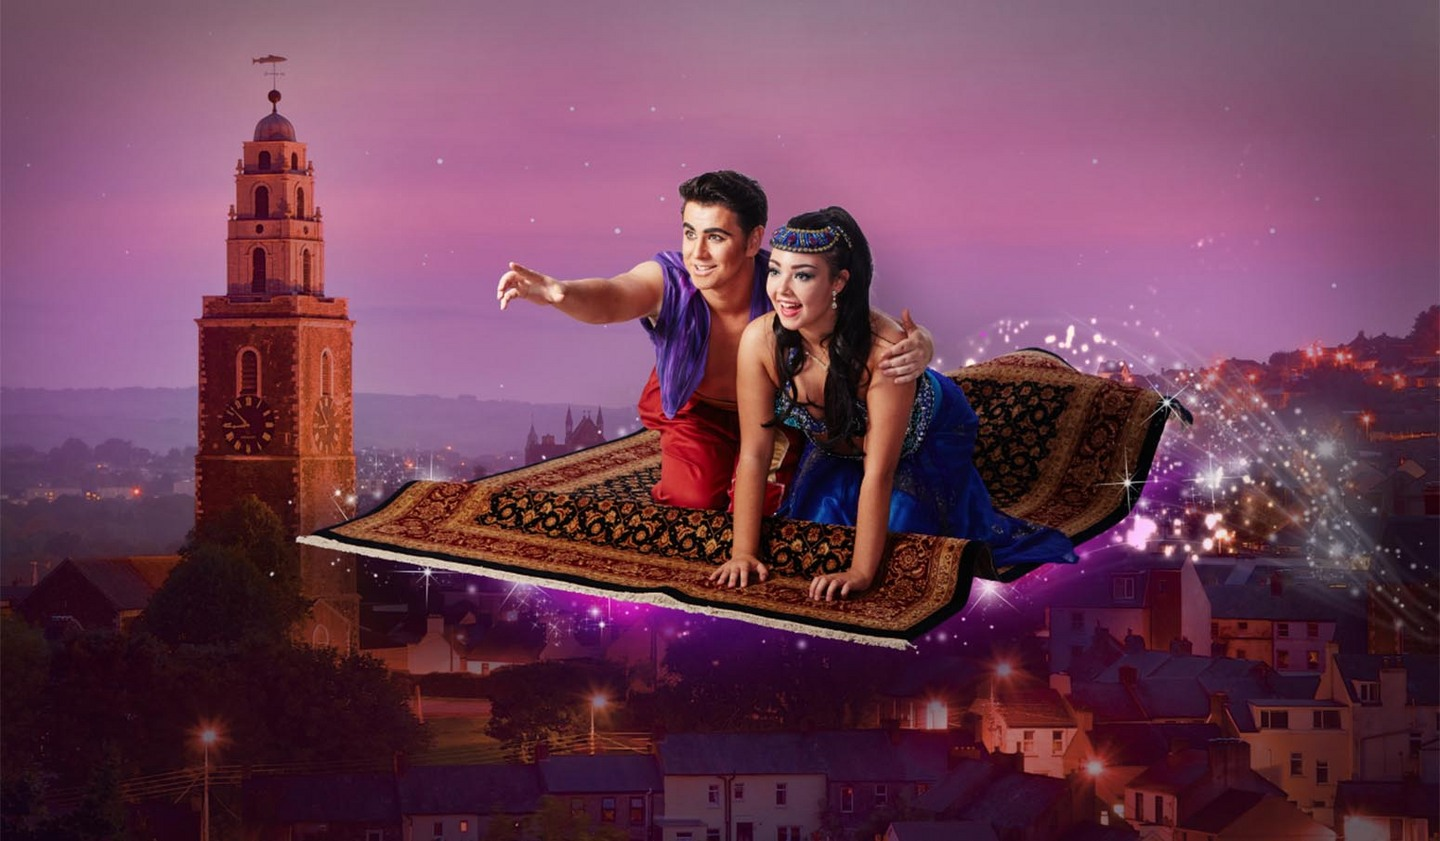 Flying Carpet Review – Aladdin: A Flying Carpet Ride